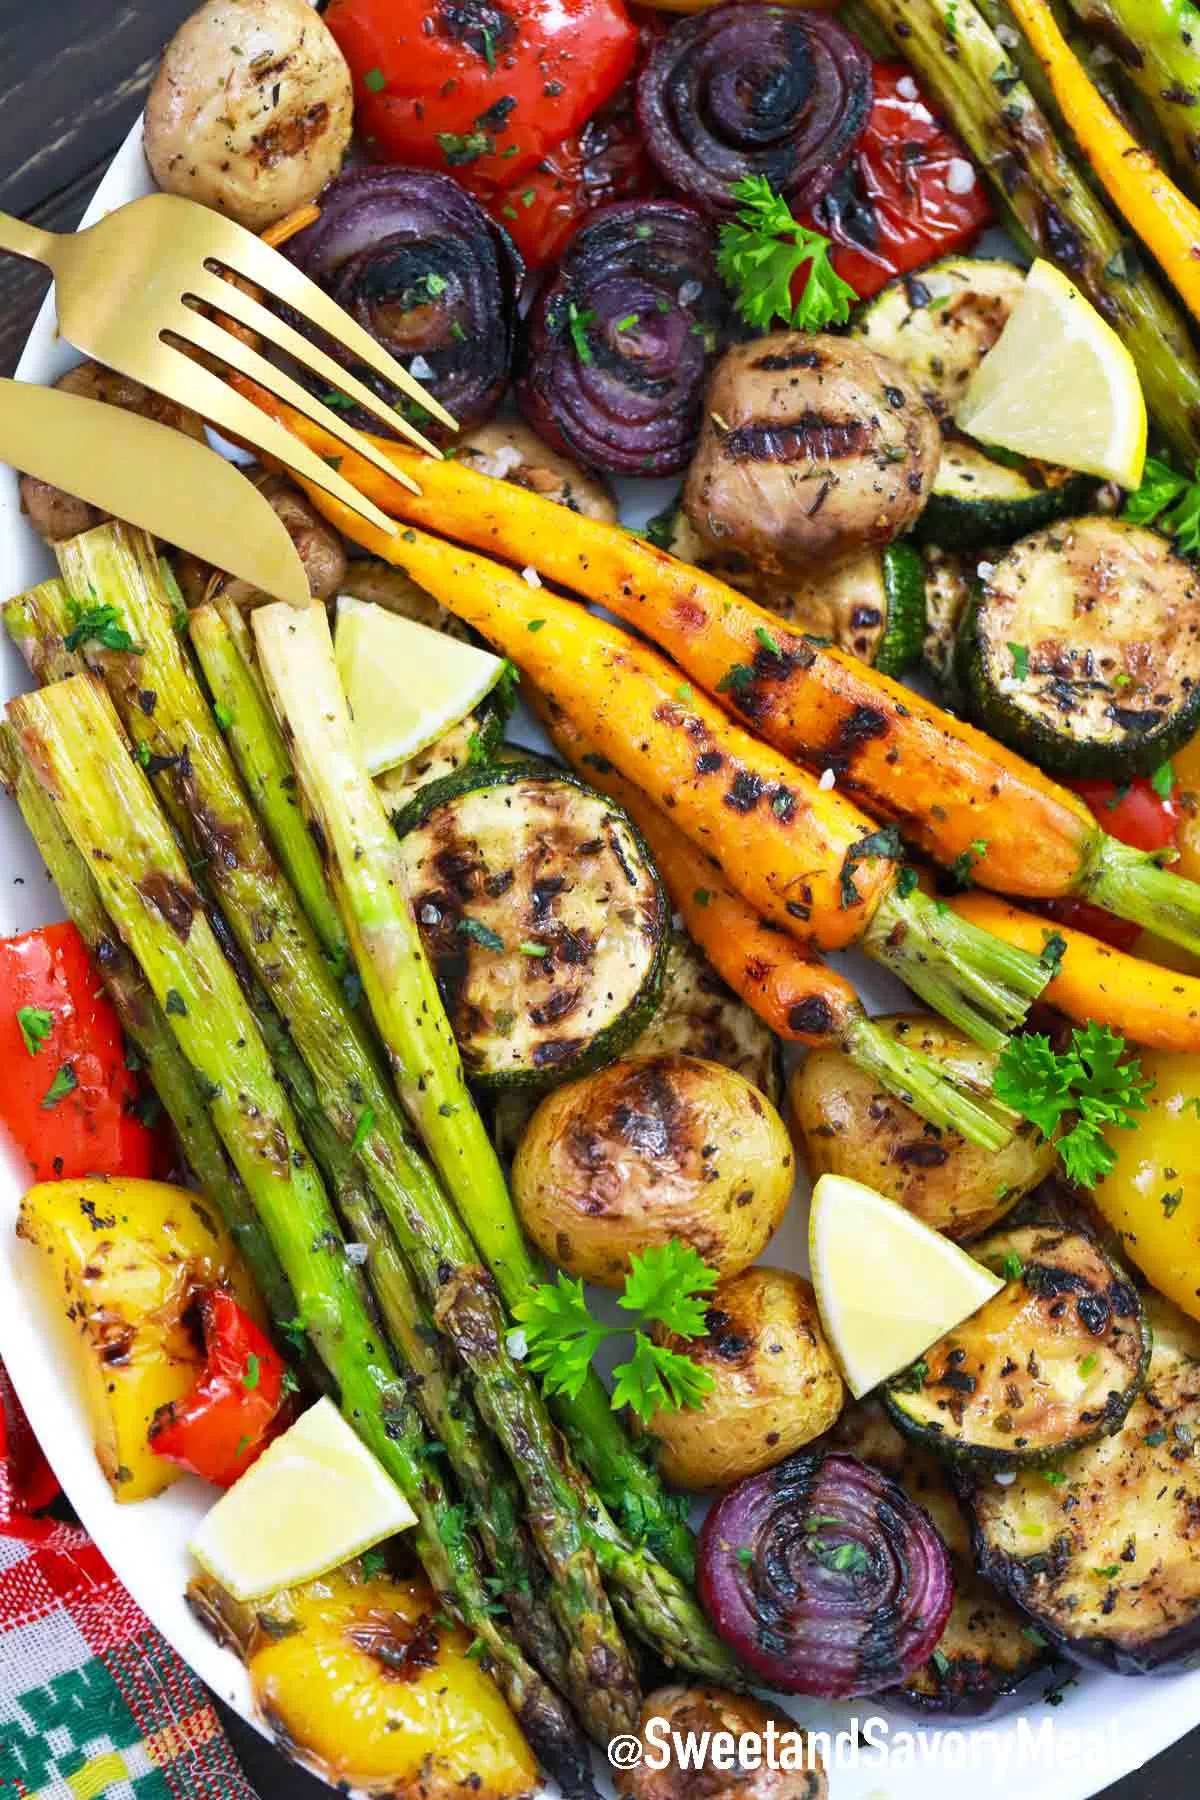 Meal plan ideas using August produce: Delicious marinated, grilled veggies at Sweet and Savory Meals